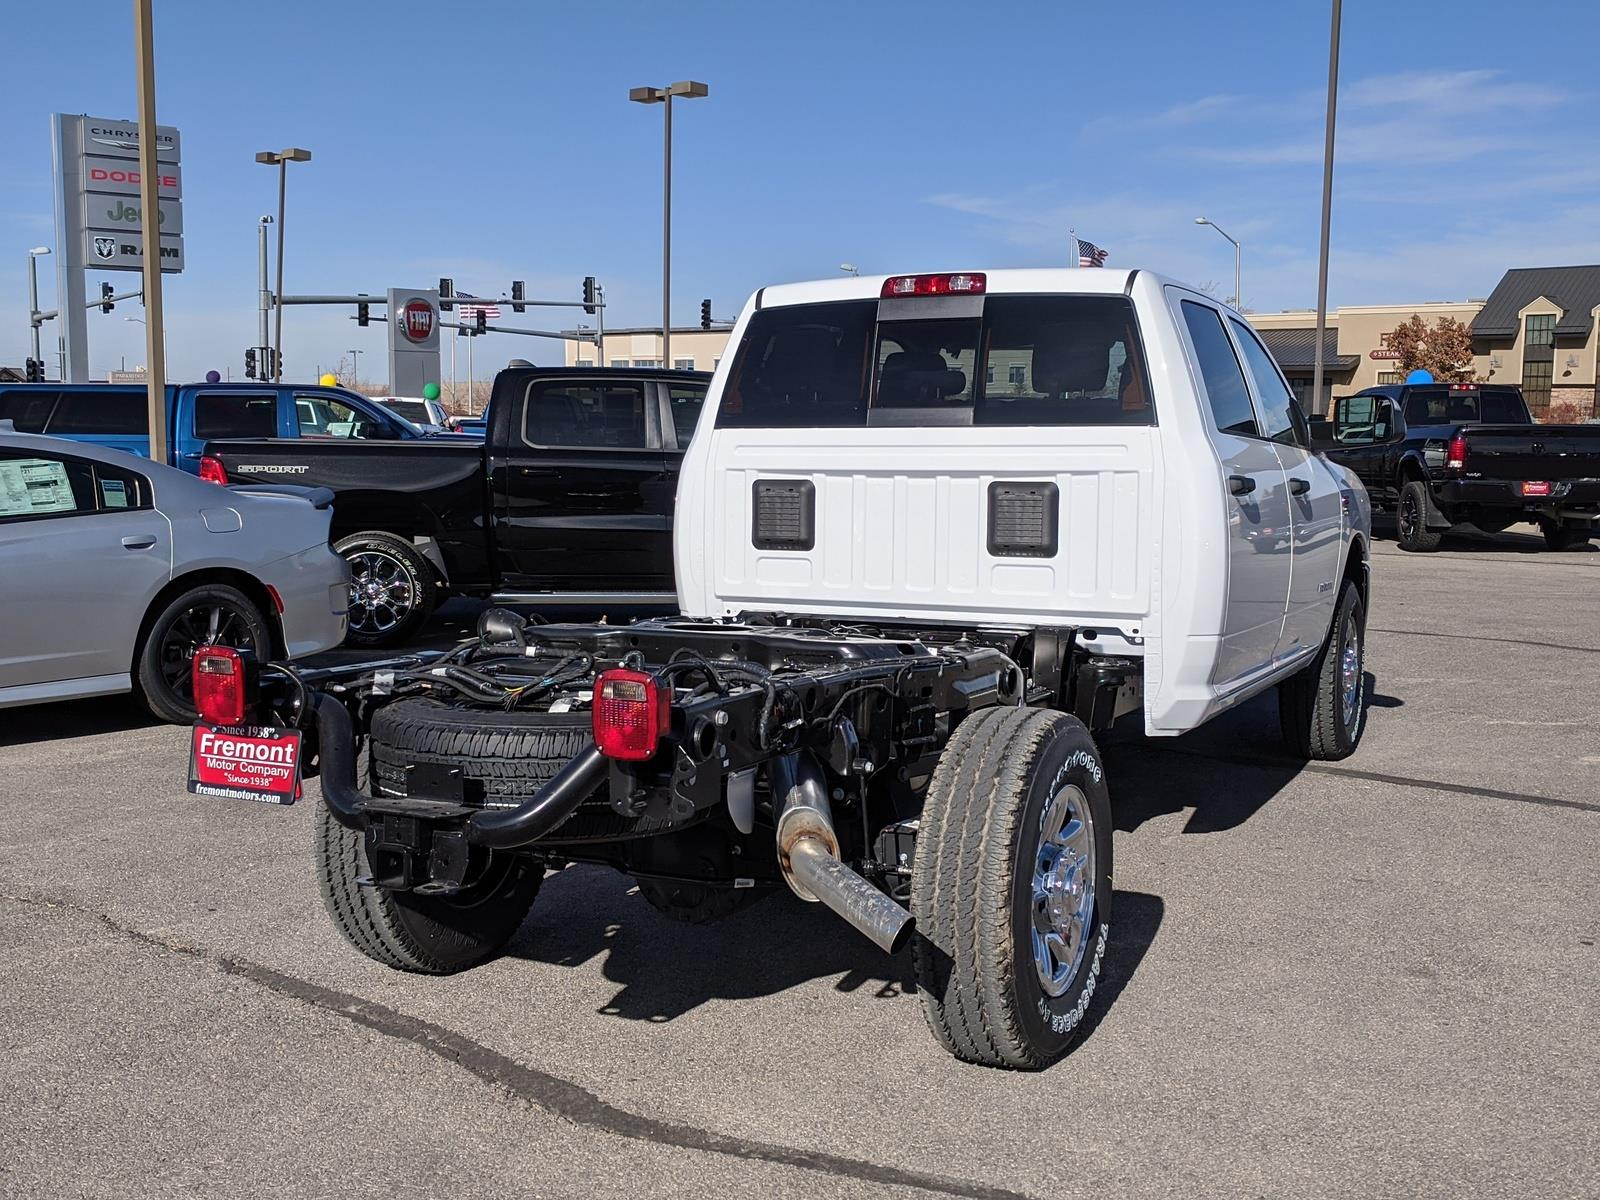 2020 Ram 2500 Crew Cab 4x4, Cab Chassis #11XD20161 - photo 1